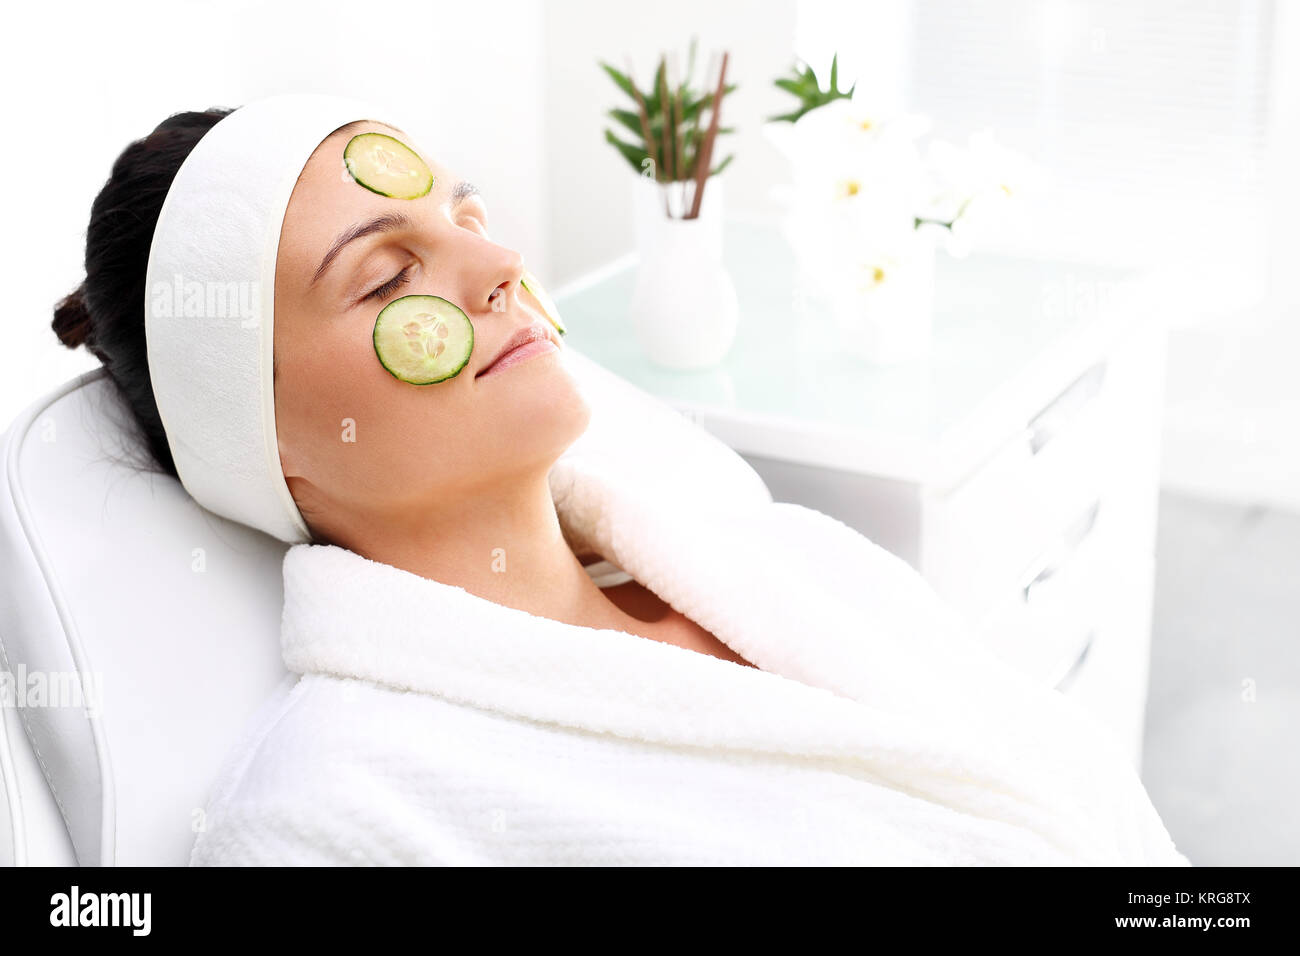 cucumber mask. skin care treatment in the beauty salon - Stock Image